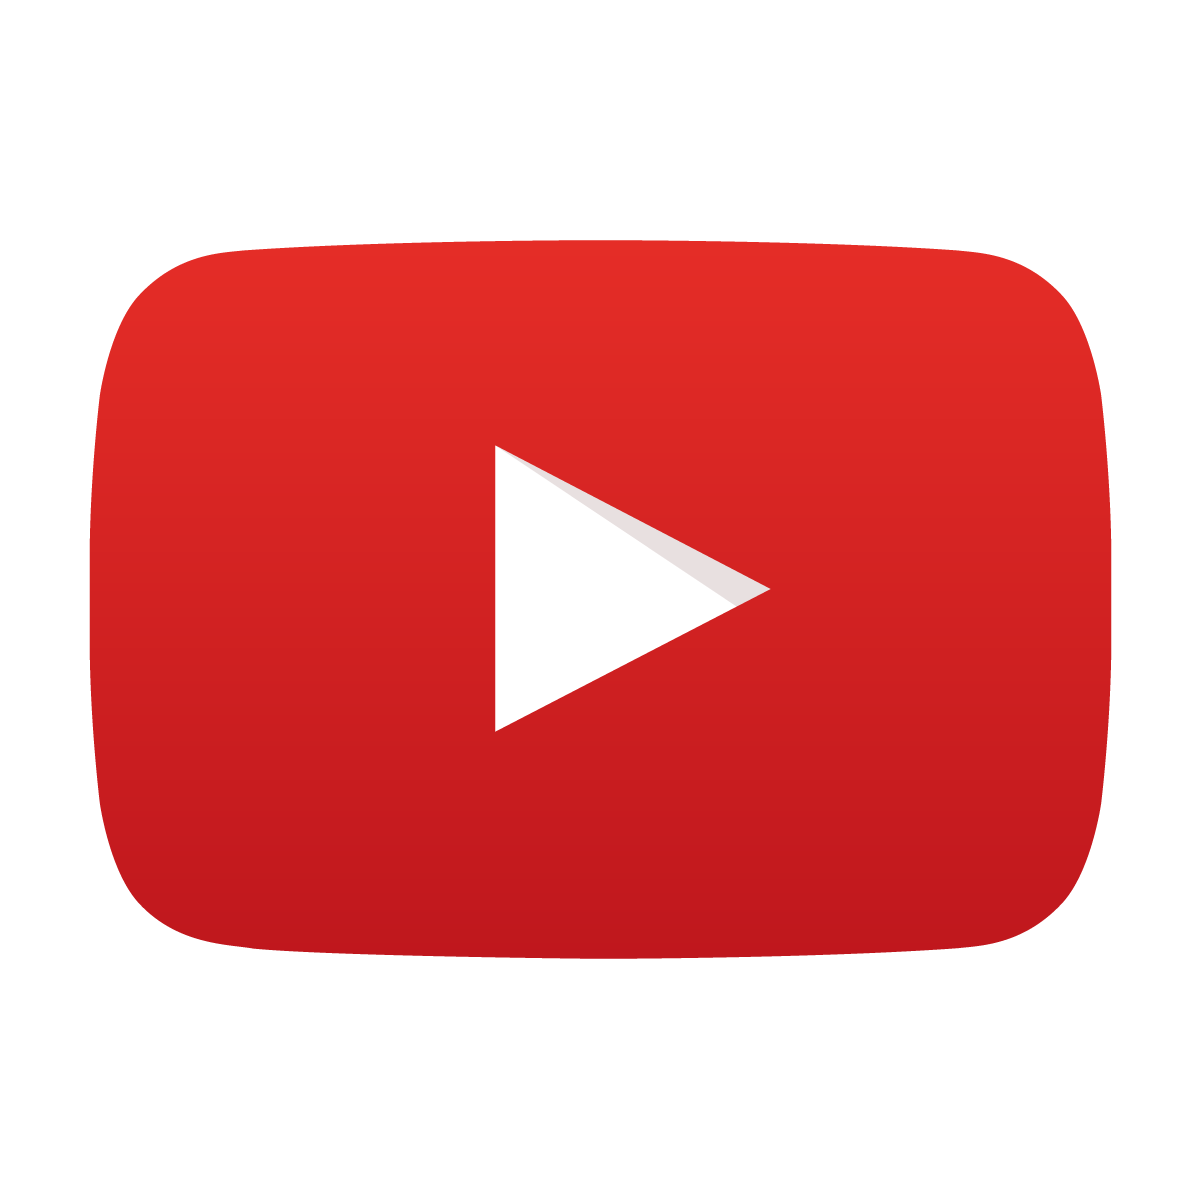 Hd Youtube Logo Png Transparent Background Download Number 46031 Daily Updated Free Icons And Png Images For Your Projects All I Desain Logo Gambar Desain